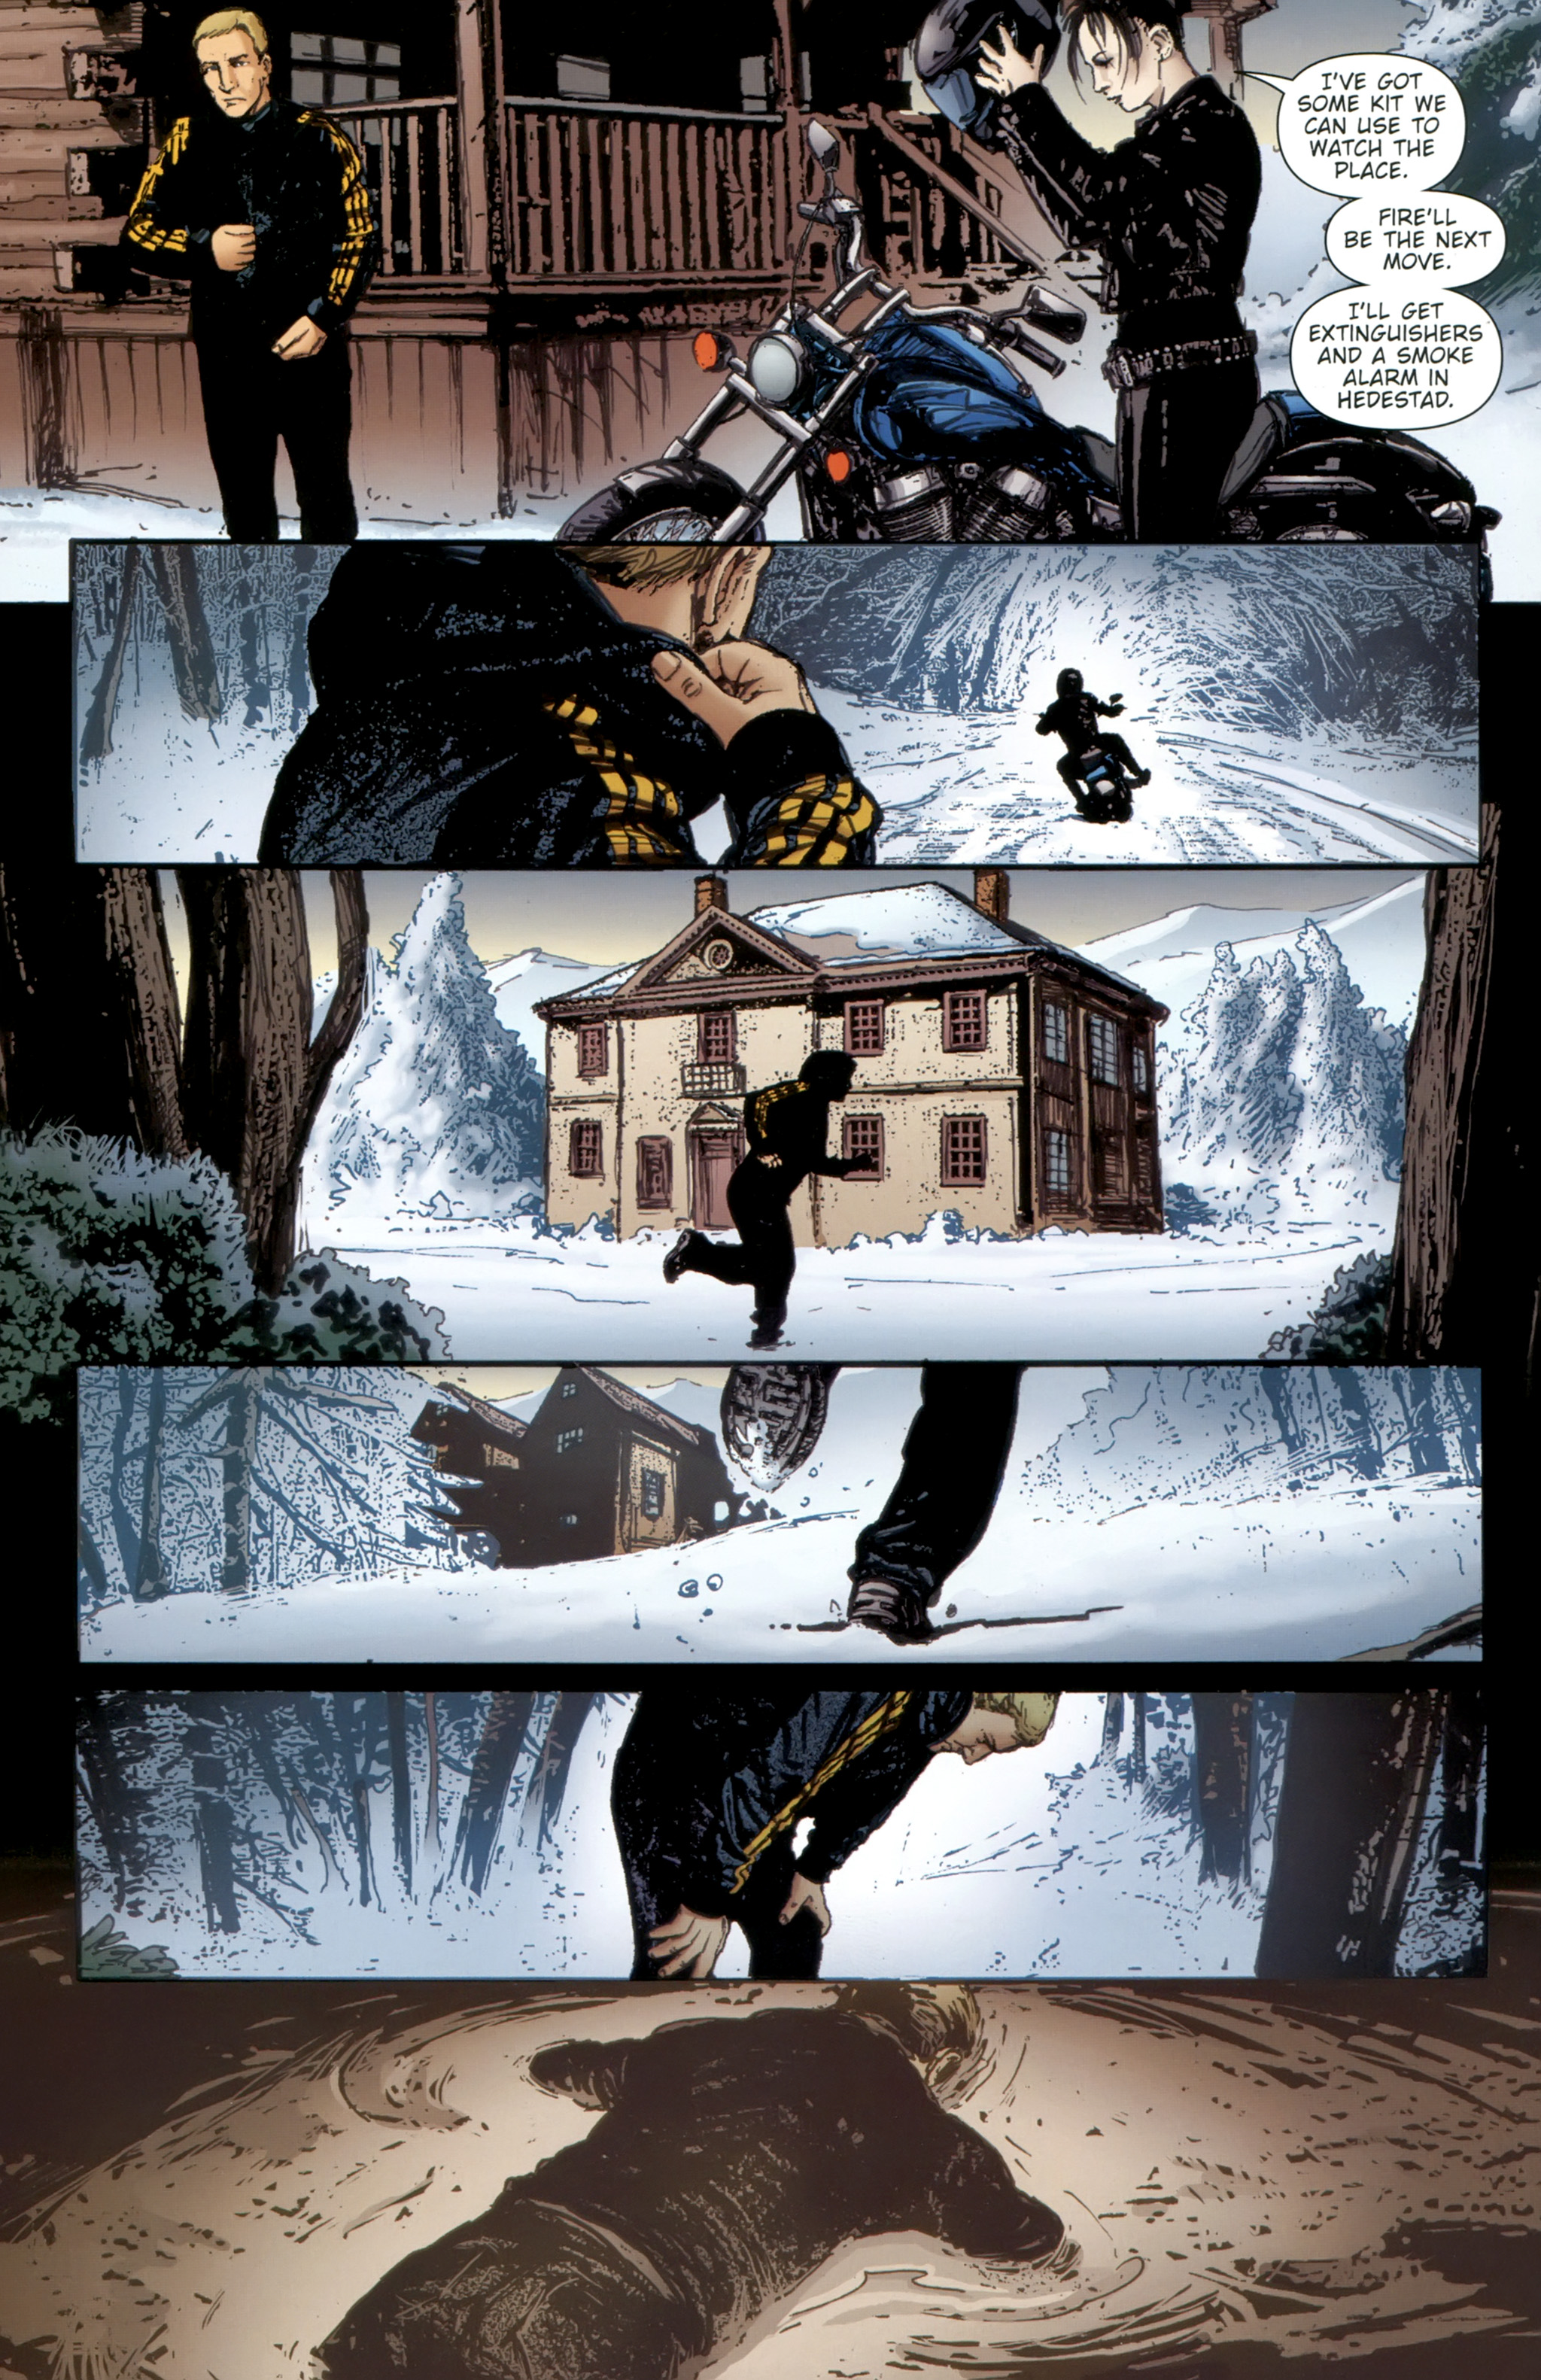 Read online The Girl With the Dragon Tattoo comic -  Issue # TPB 2 - 70